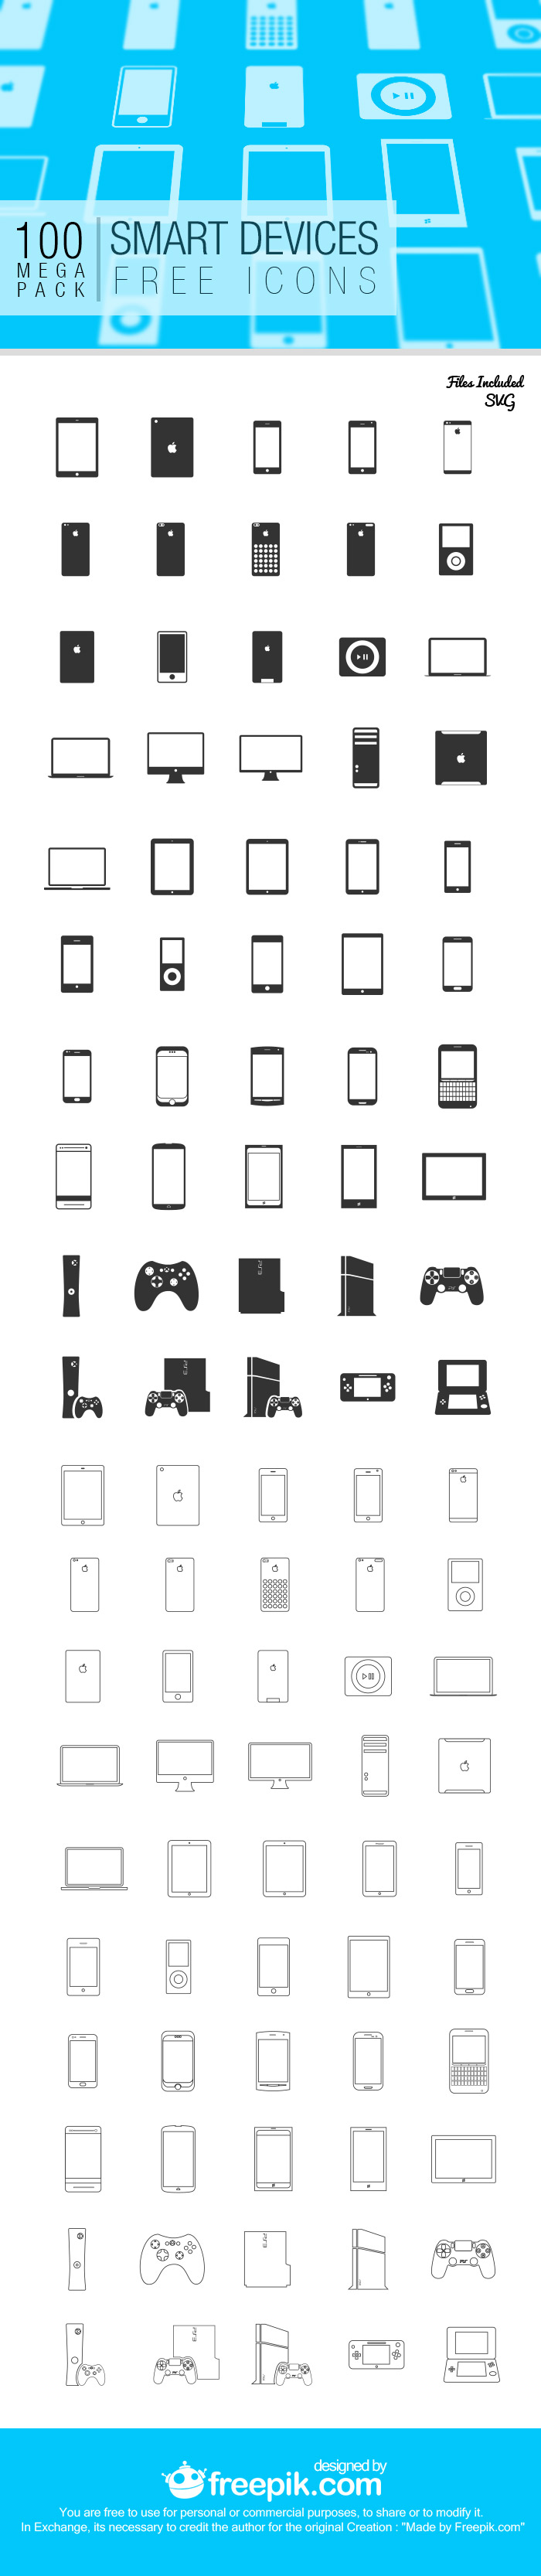 Smart devices Sunday Freebie: Pack of 100 Smart Devices Icons